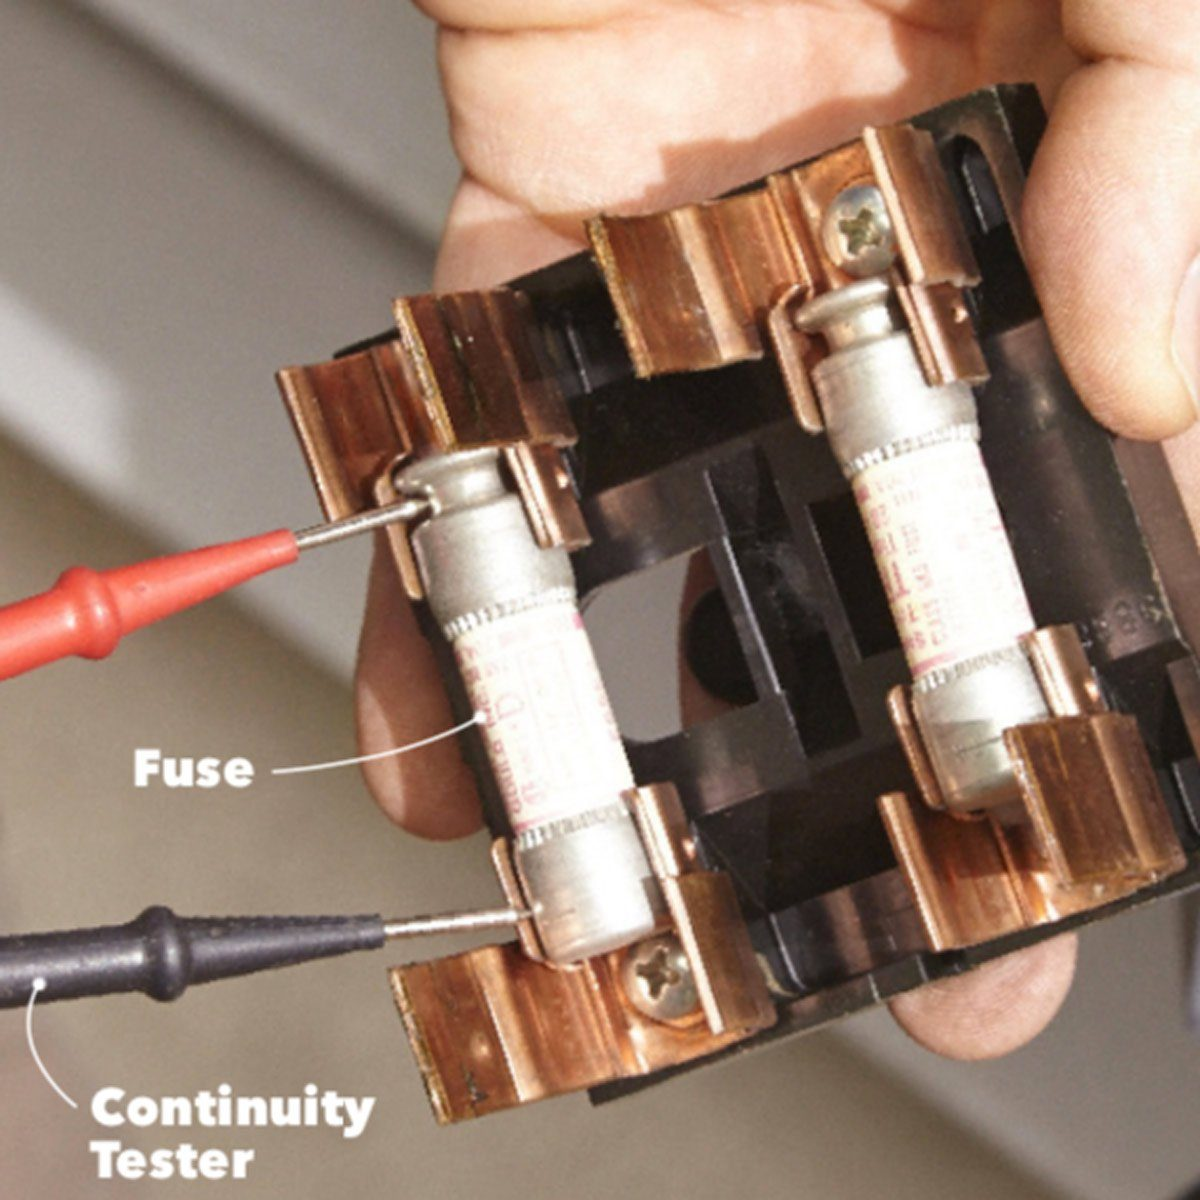 Checking to see if fuses are burnt out with continuity tester   Construction Pro Tips